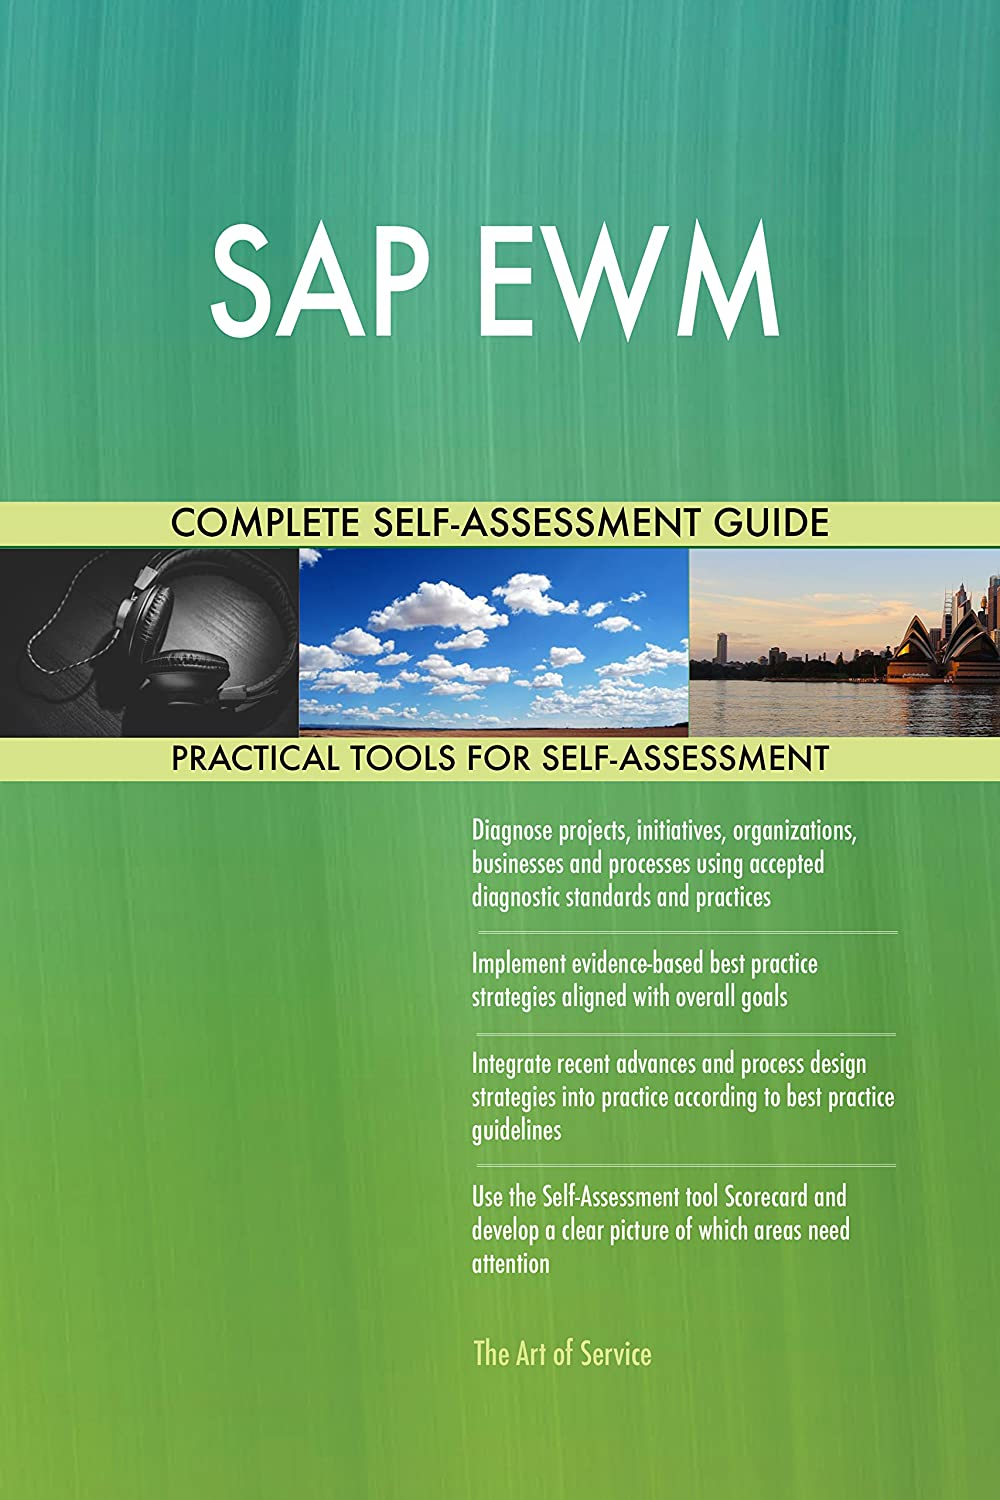 SAP EWM All-Inclusive Self-Assessment - More than 700